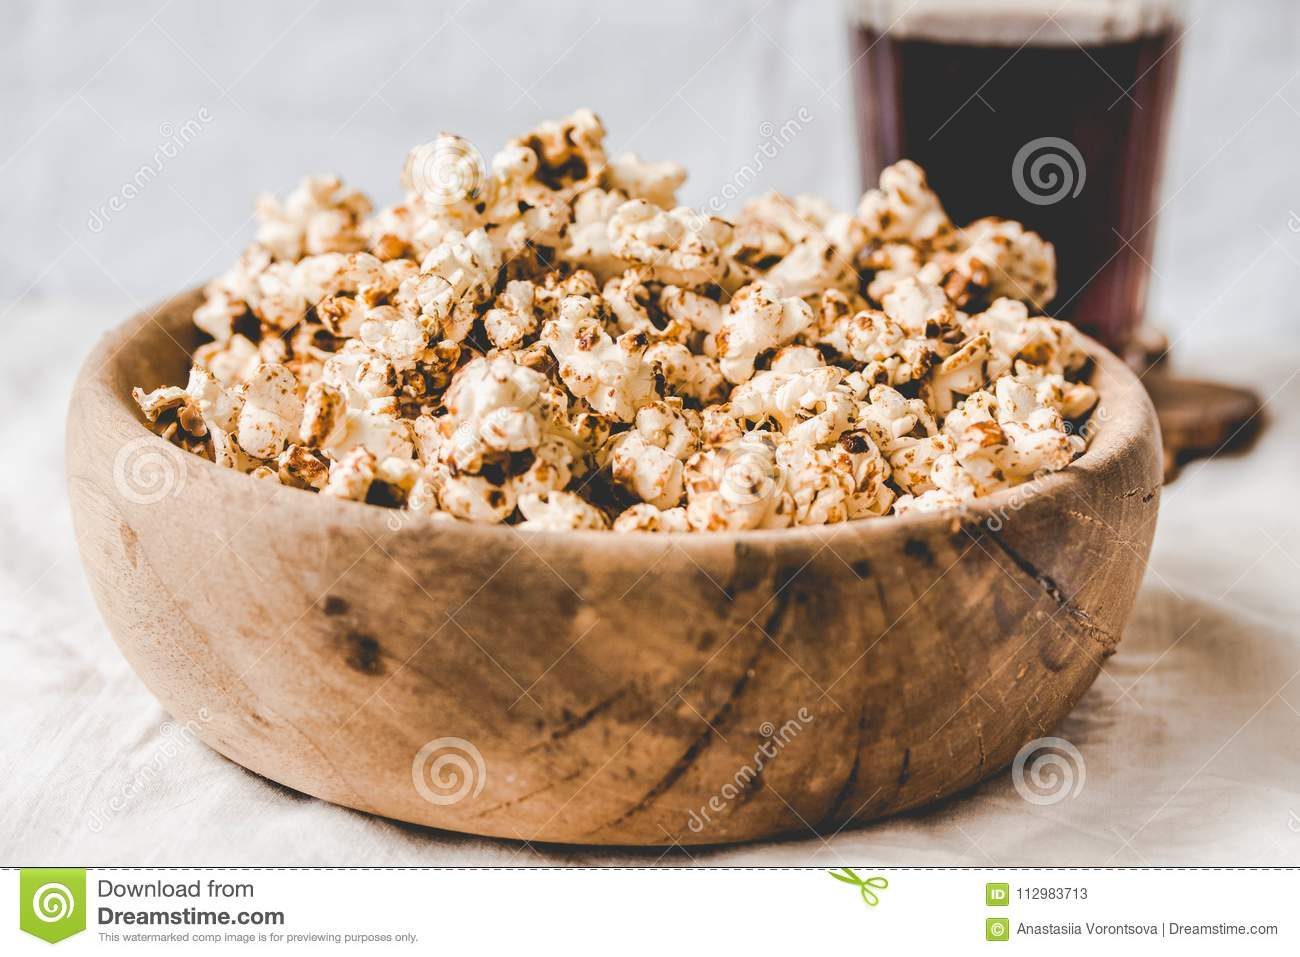 Sweet caramel vegan popcorn in a wooden plate. Snack for the cinema. Rustic.light background. Selective focus. Toning.